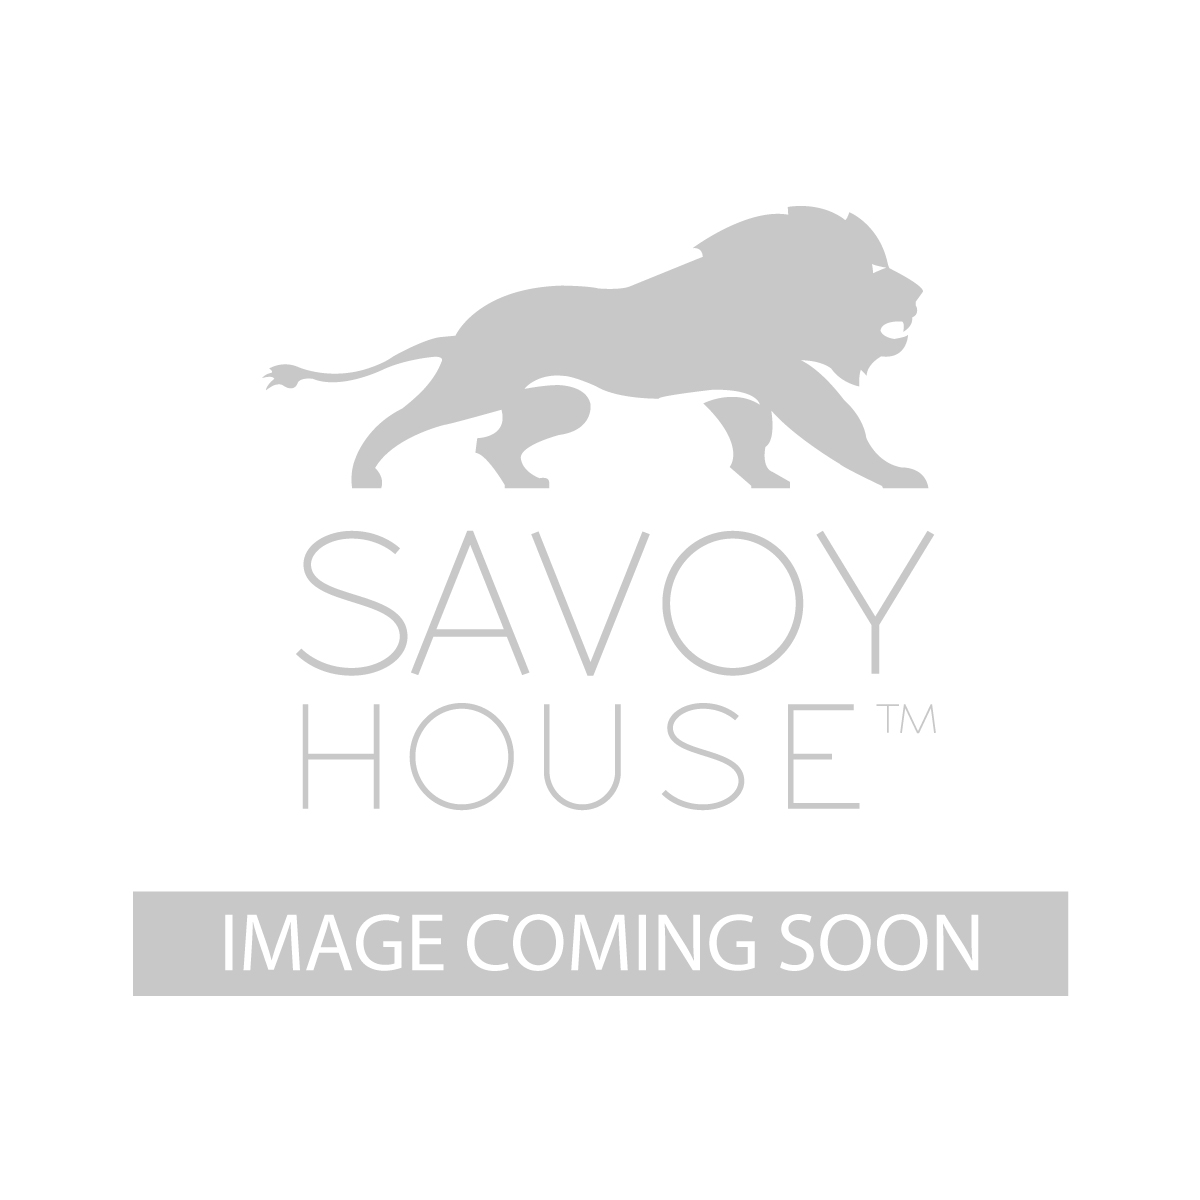 8-9053-3-SN Handel 3 Light Bath Bar by Savoy House